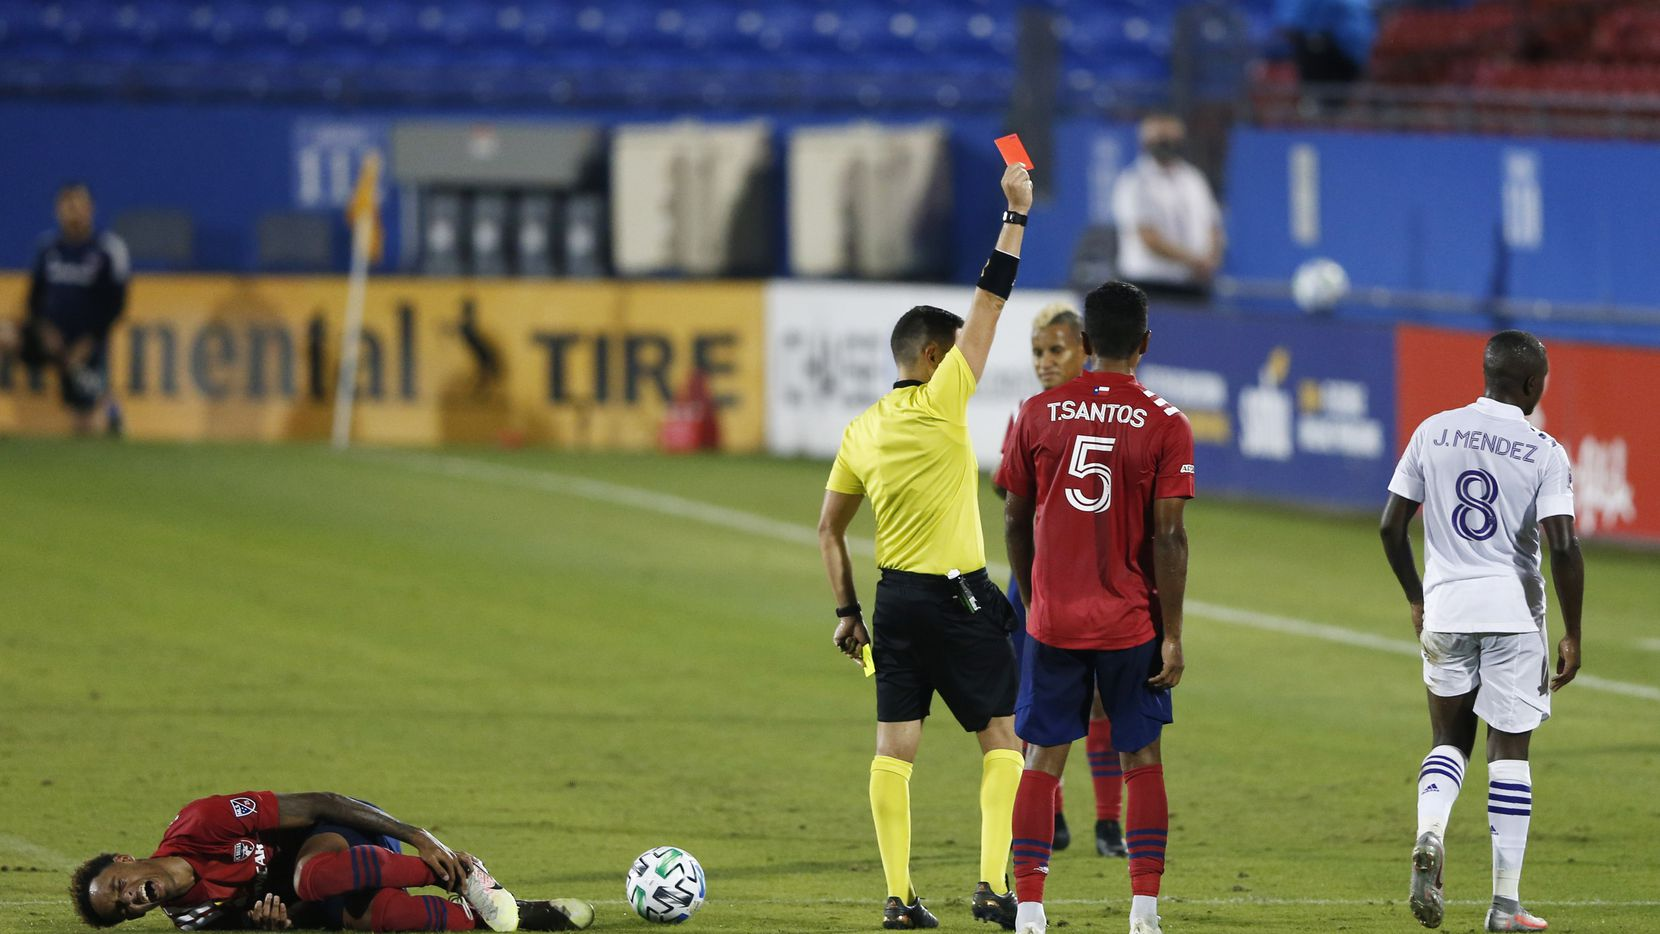 Orlando City midfielder Sebas Mendez (8) gets a red card as FC Dallas forward Bryan Reynolds (14) grabs his leg during the second half of play at Toyota Stadium in Frisco, Texas on Sunday, September 27, 2020.